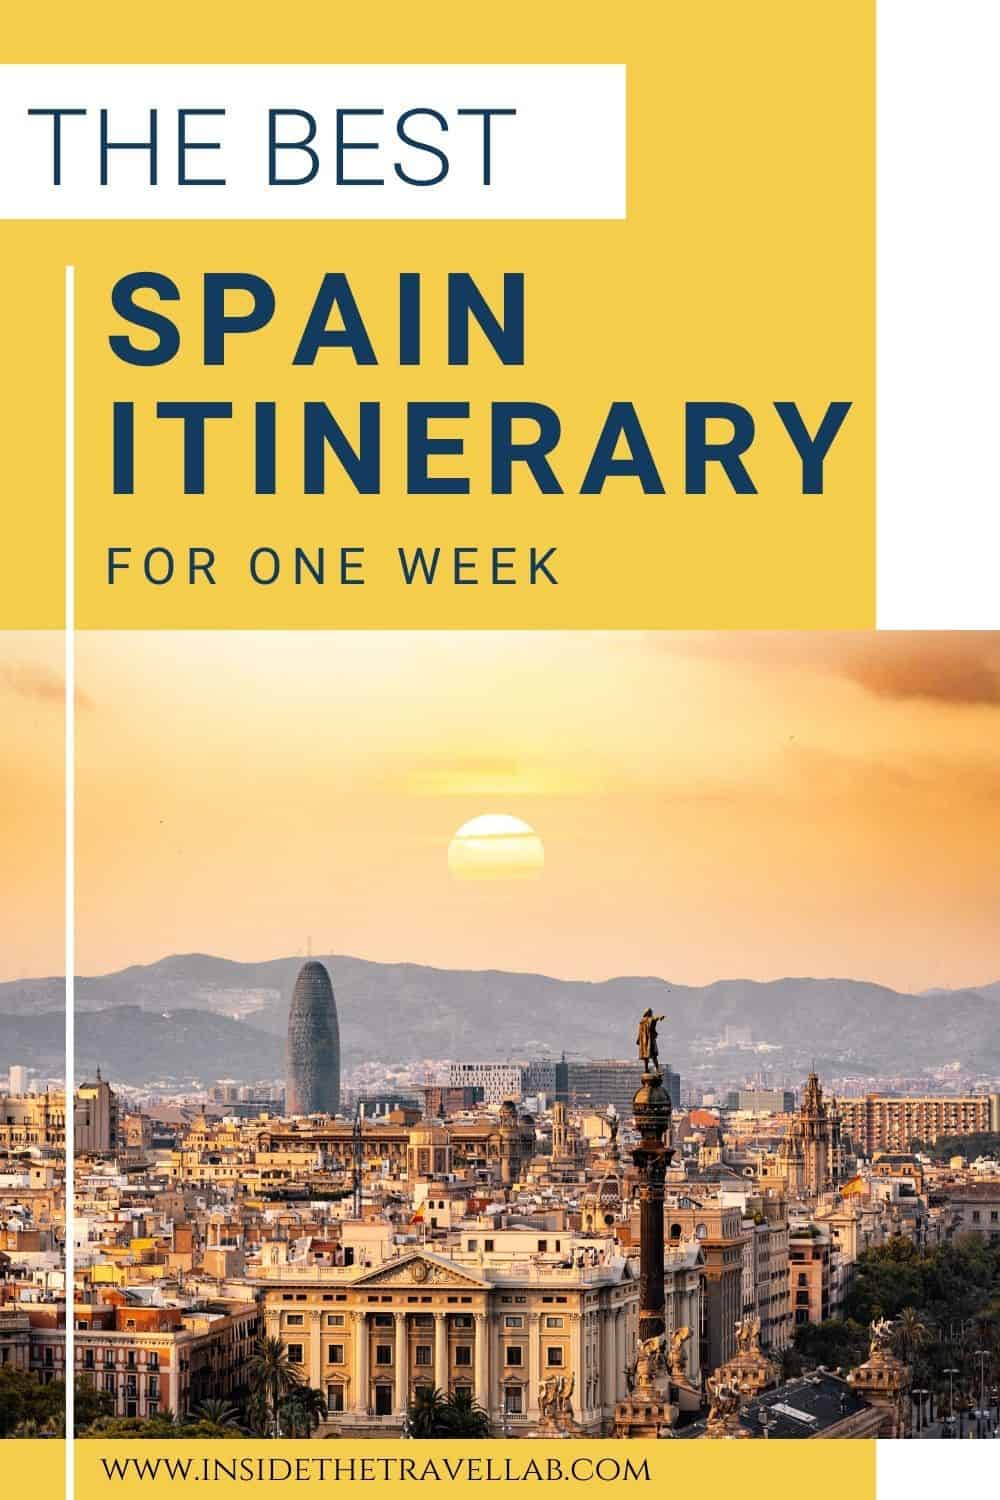 The best Spain itinerary - how to see Spain in a week cover image